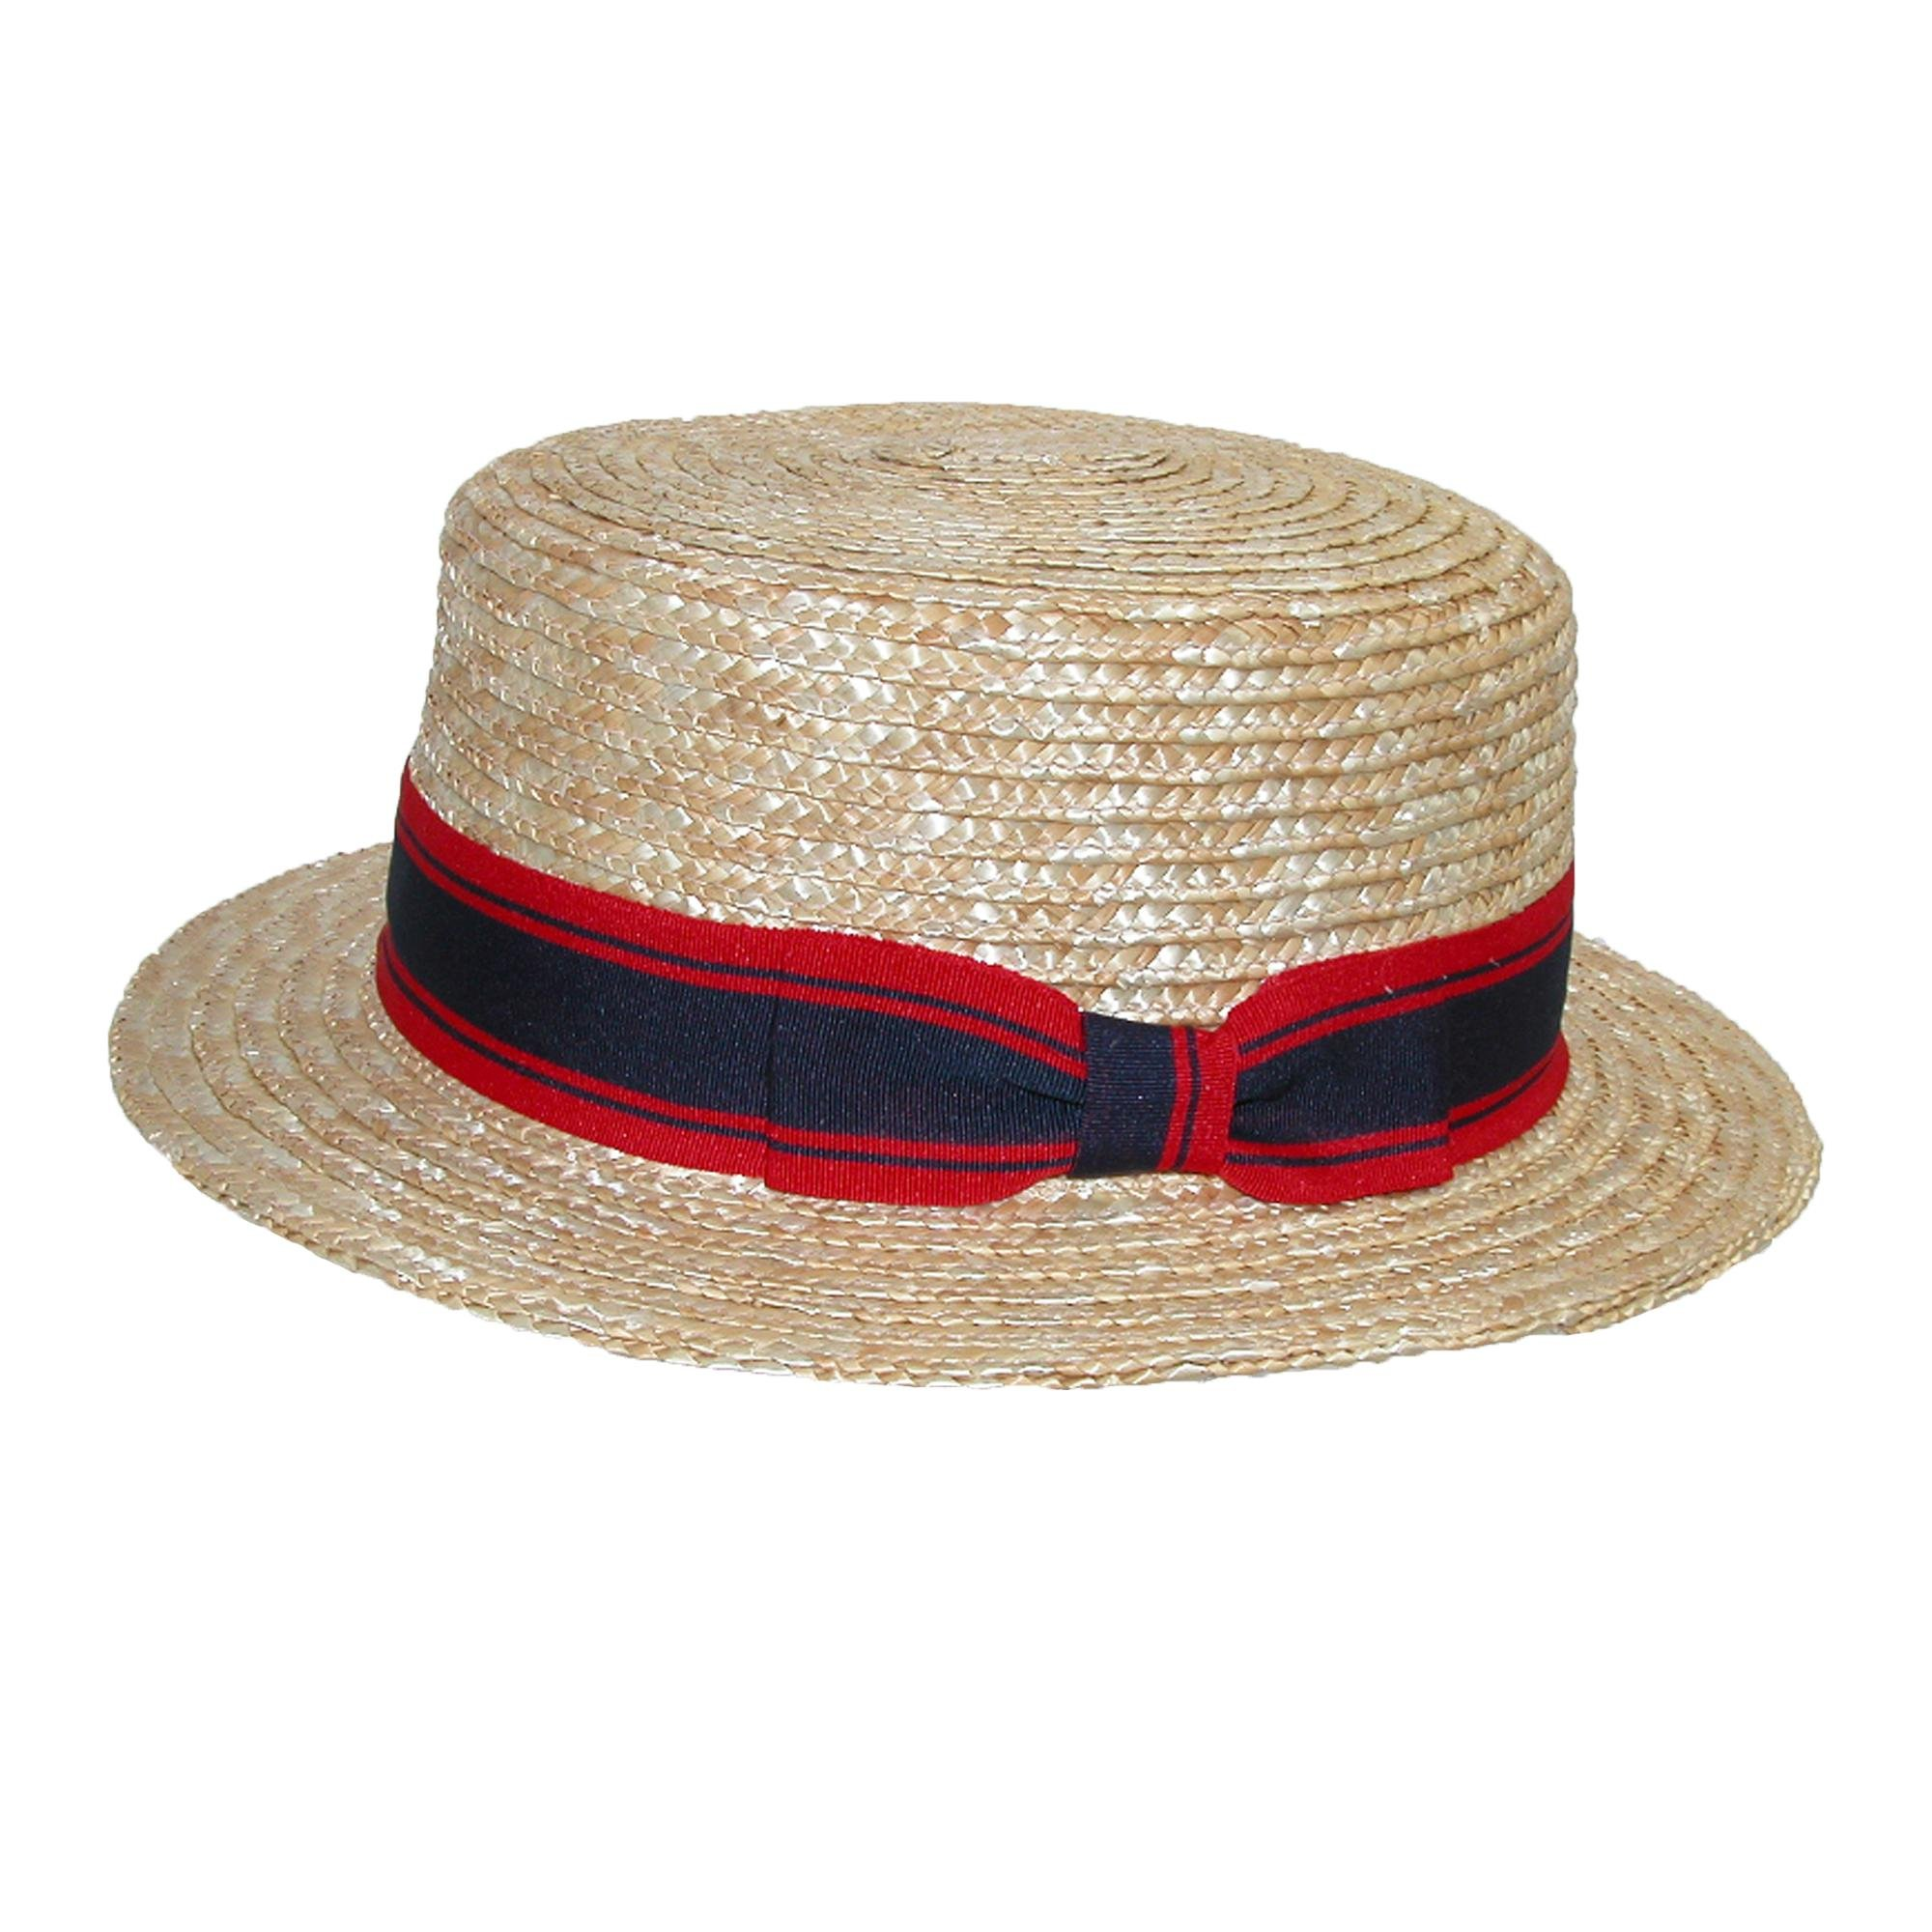 865859ef481064 Jeanne Simmons Straw 2 Inch Brim Grosgrain Band Boater Hat Beige product  image